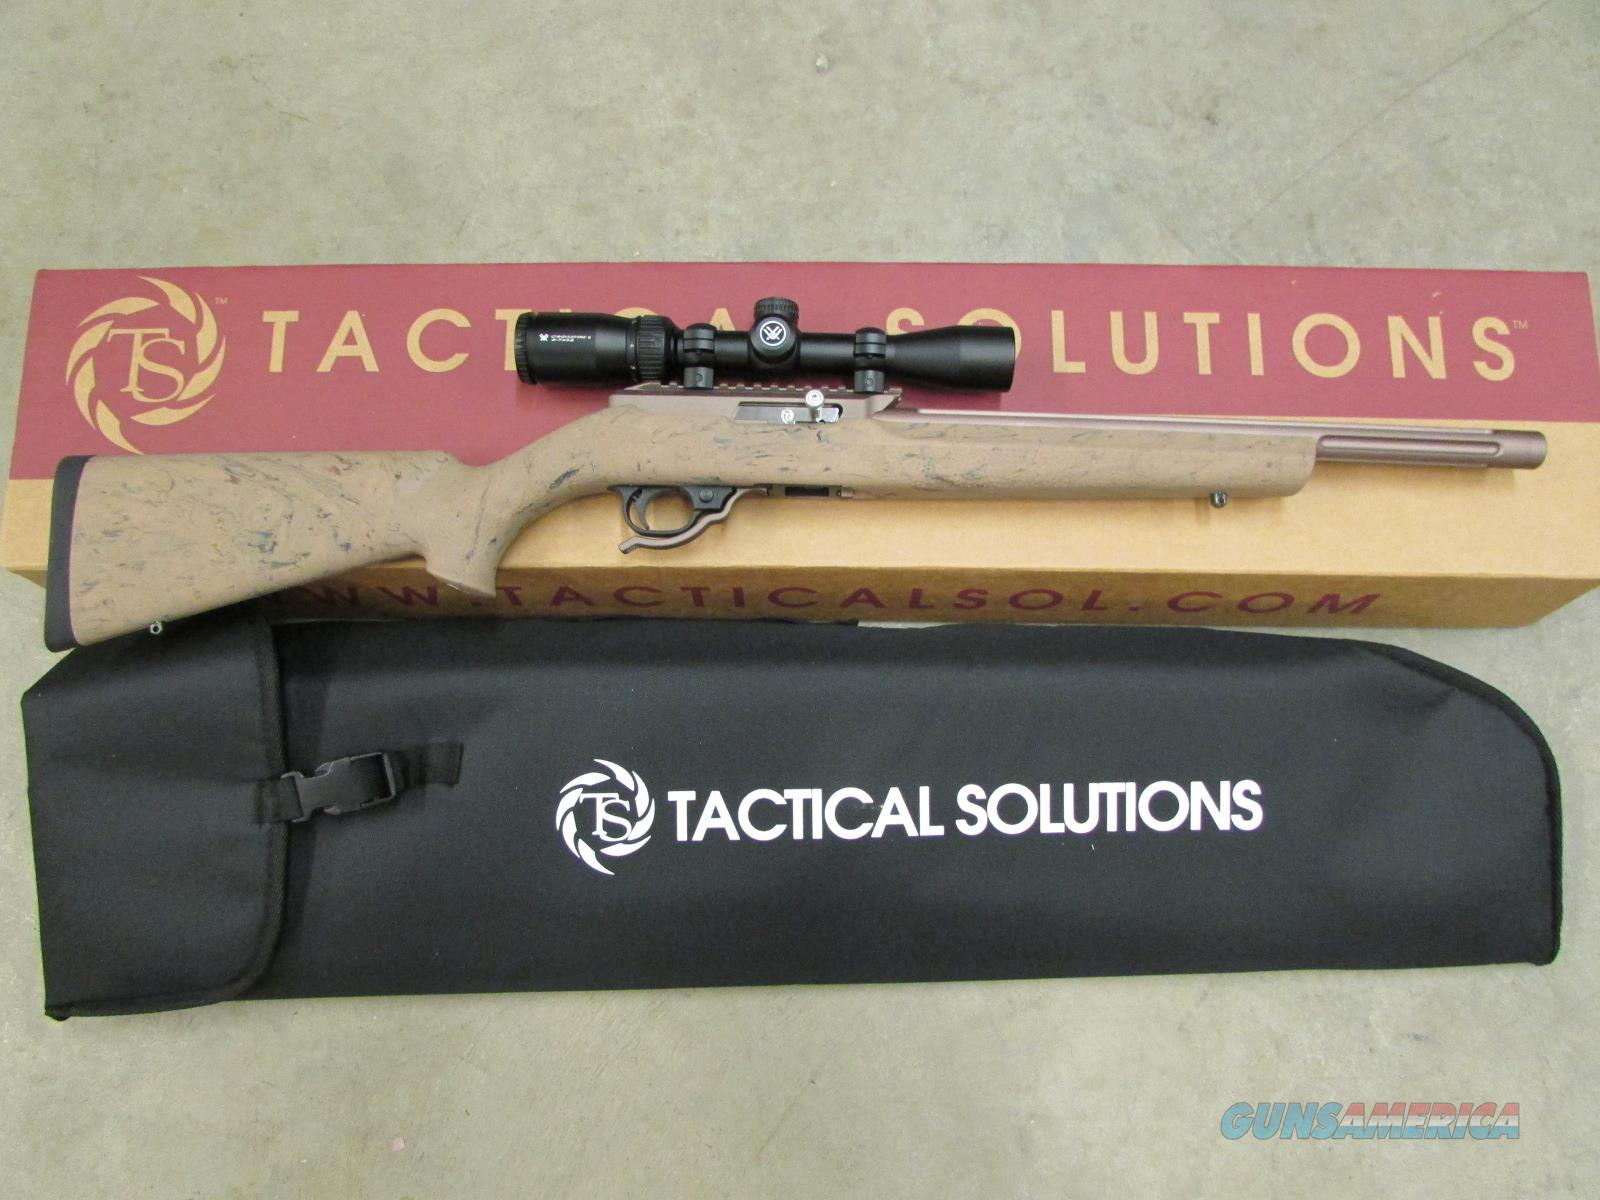 TACTICAL SOLUTIONS X-RING RIFLE VORTEX 2-7X32 22 QUICKSAND / GHILLE TAN 10/22 TEQSBHGTANVRTX   Guns > Rifles > Ruger Rifles > 10-22